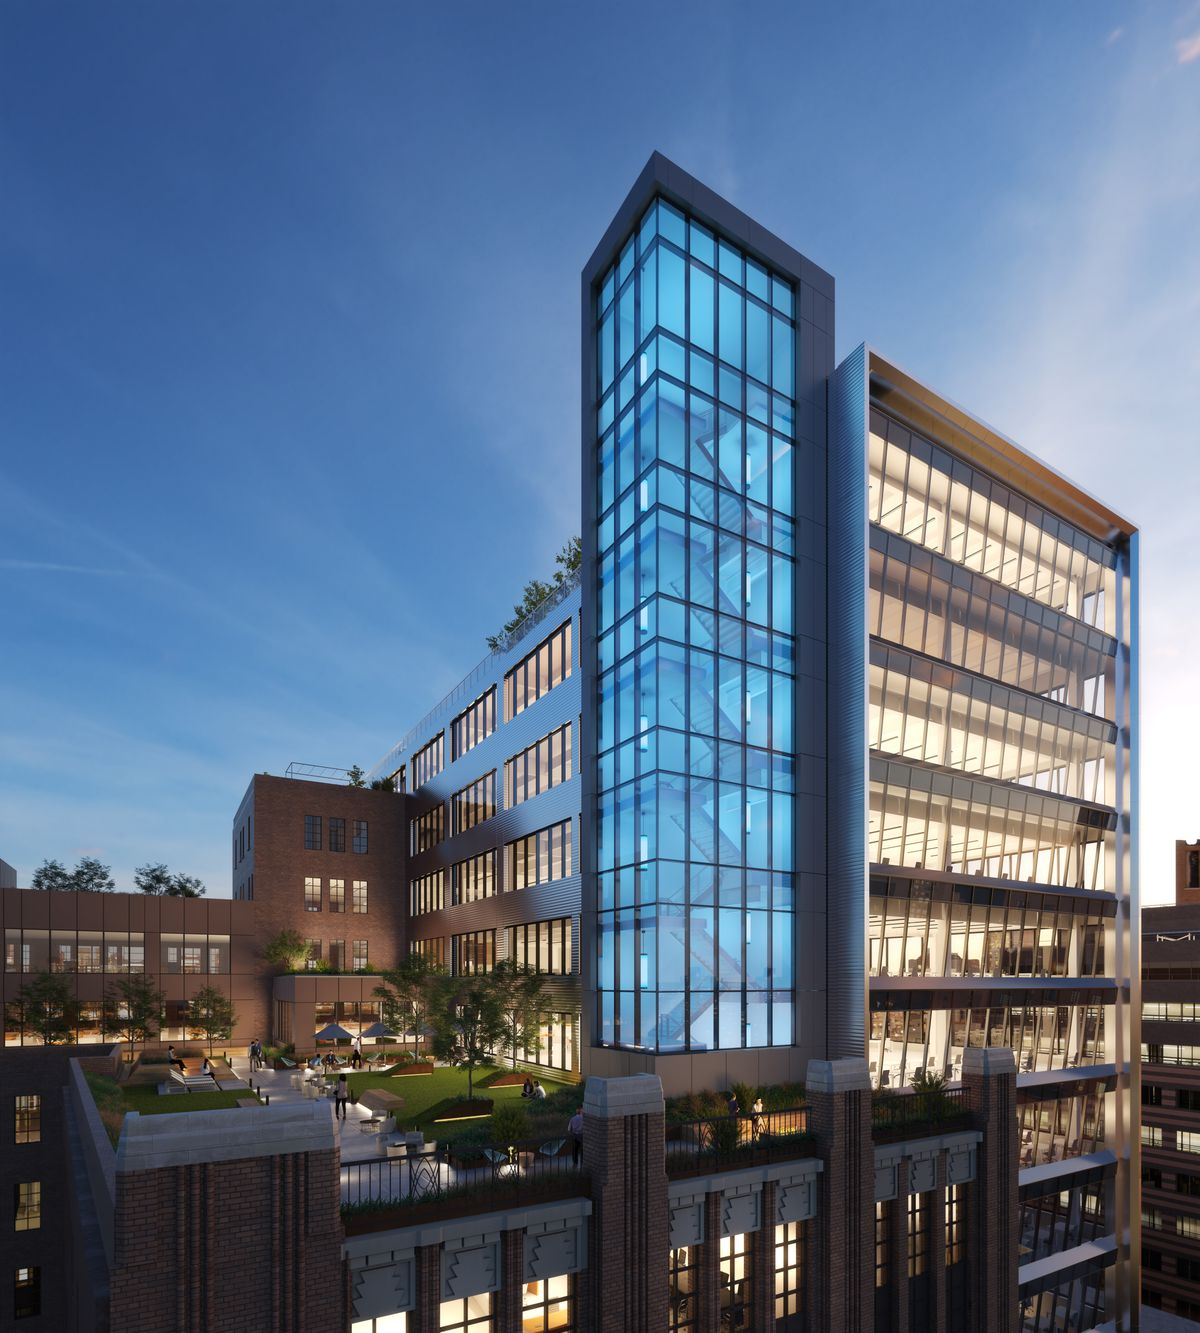 Brooklyn Apartment Building: Downtown Brooklyn's Macy's Will Sprout Creative Office Hub